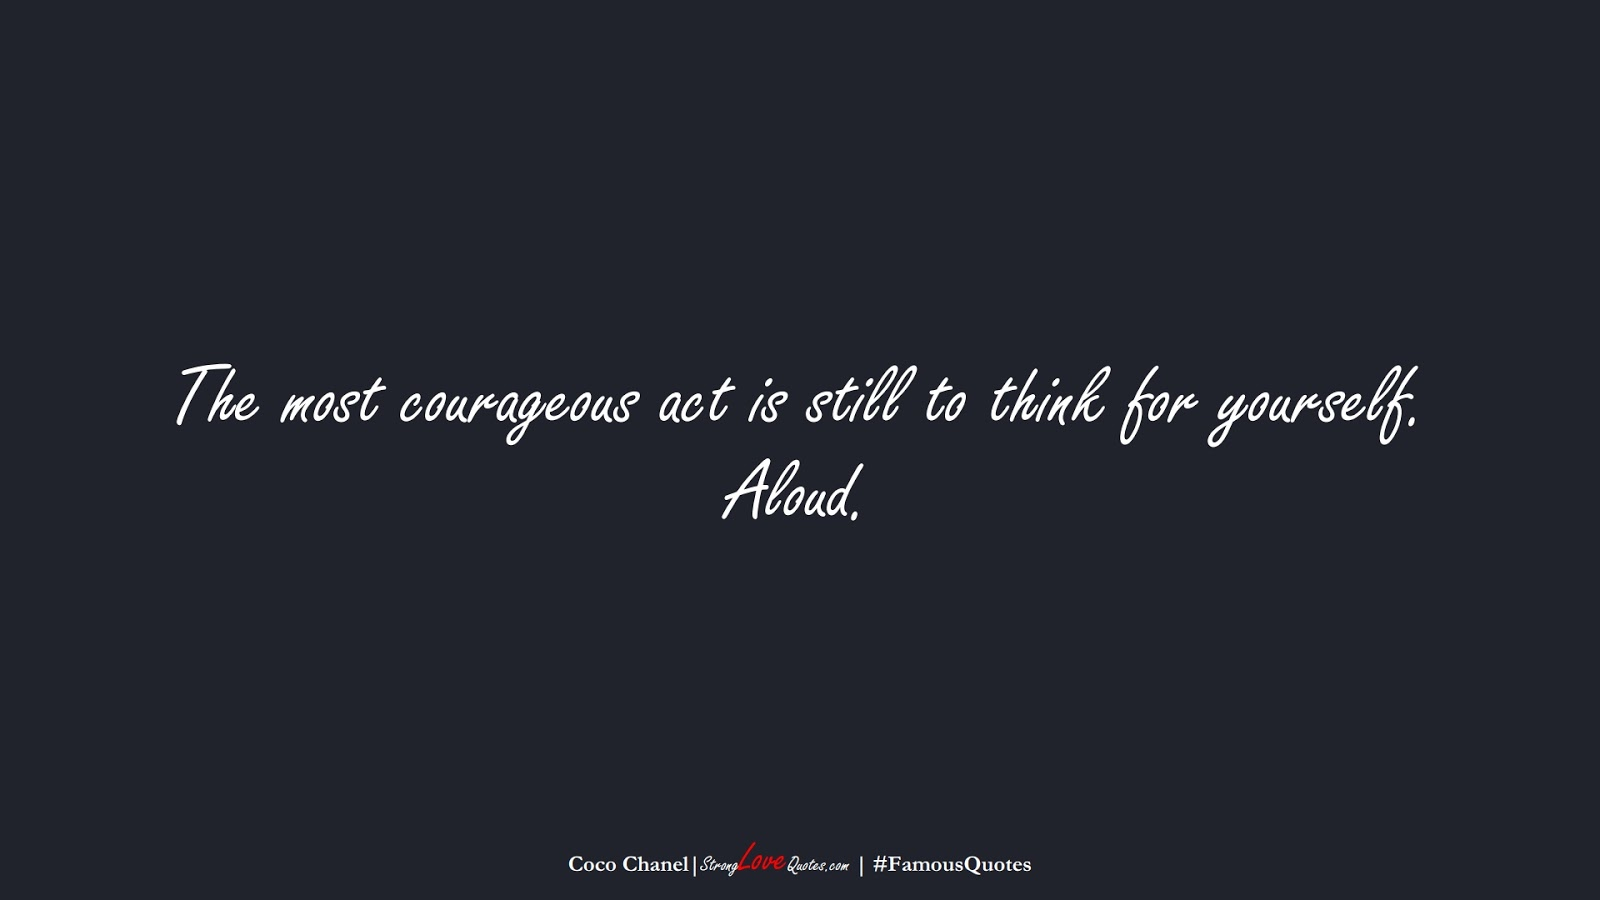 The most courageous act is still to think for yourself. Aloud. (Coco Chanel);  #FamousQuotes